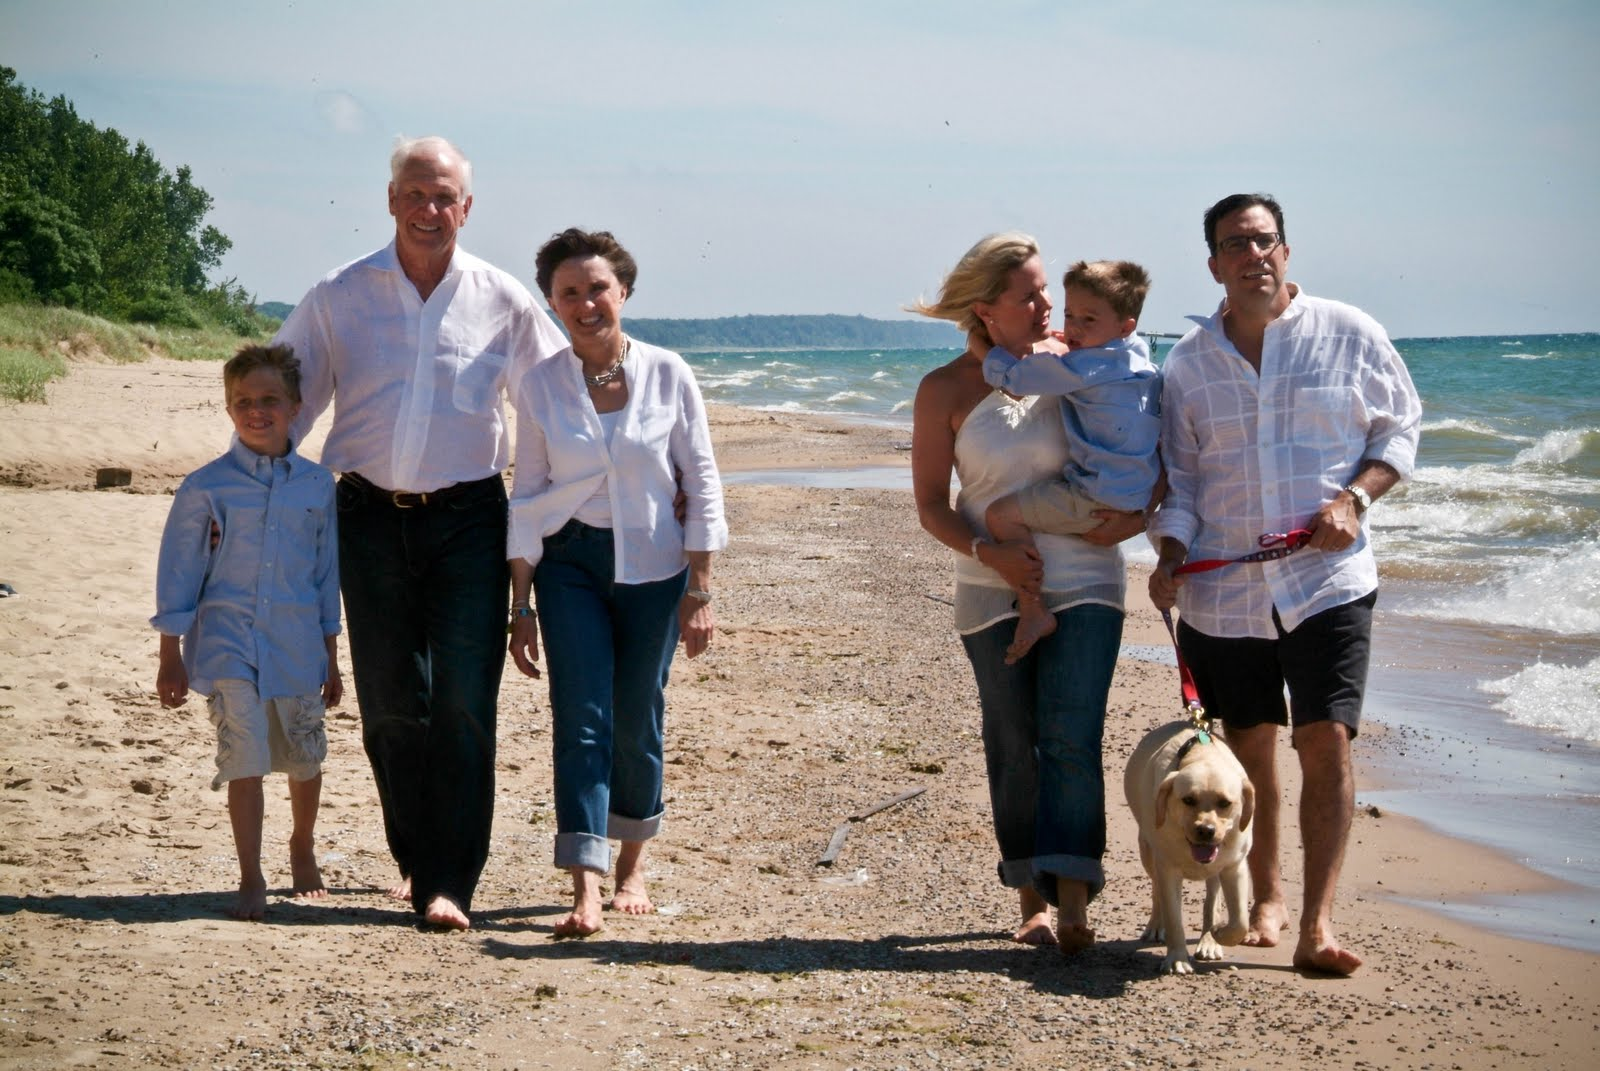 Family-walking-on-beach-1-of-1